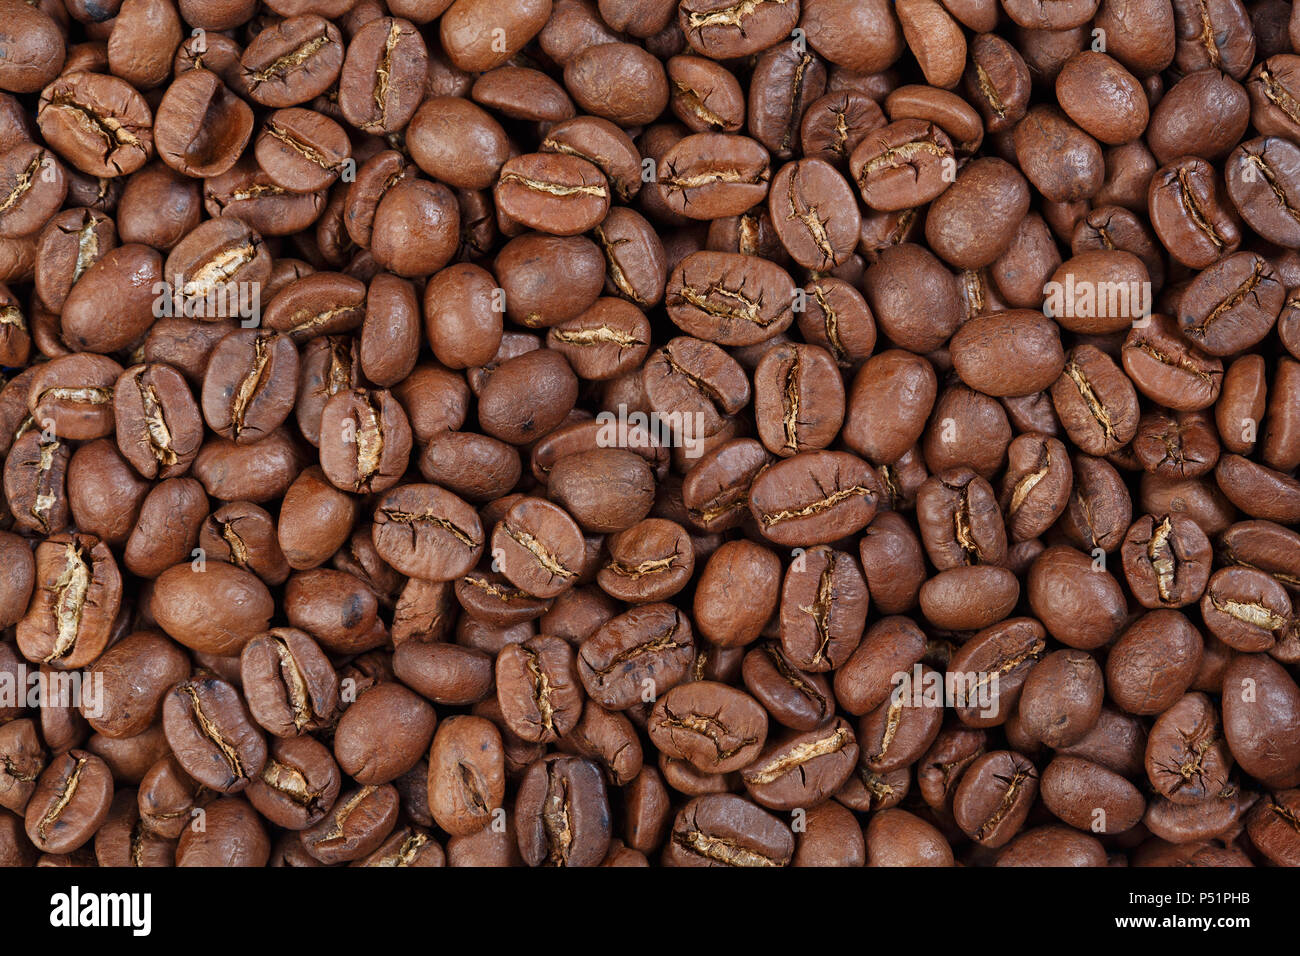 Texture of Nicaragua Coffee beans gourmet coffee . - Stock Image